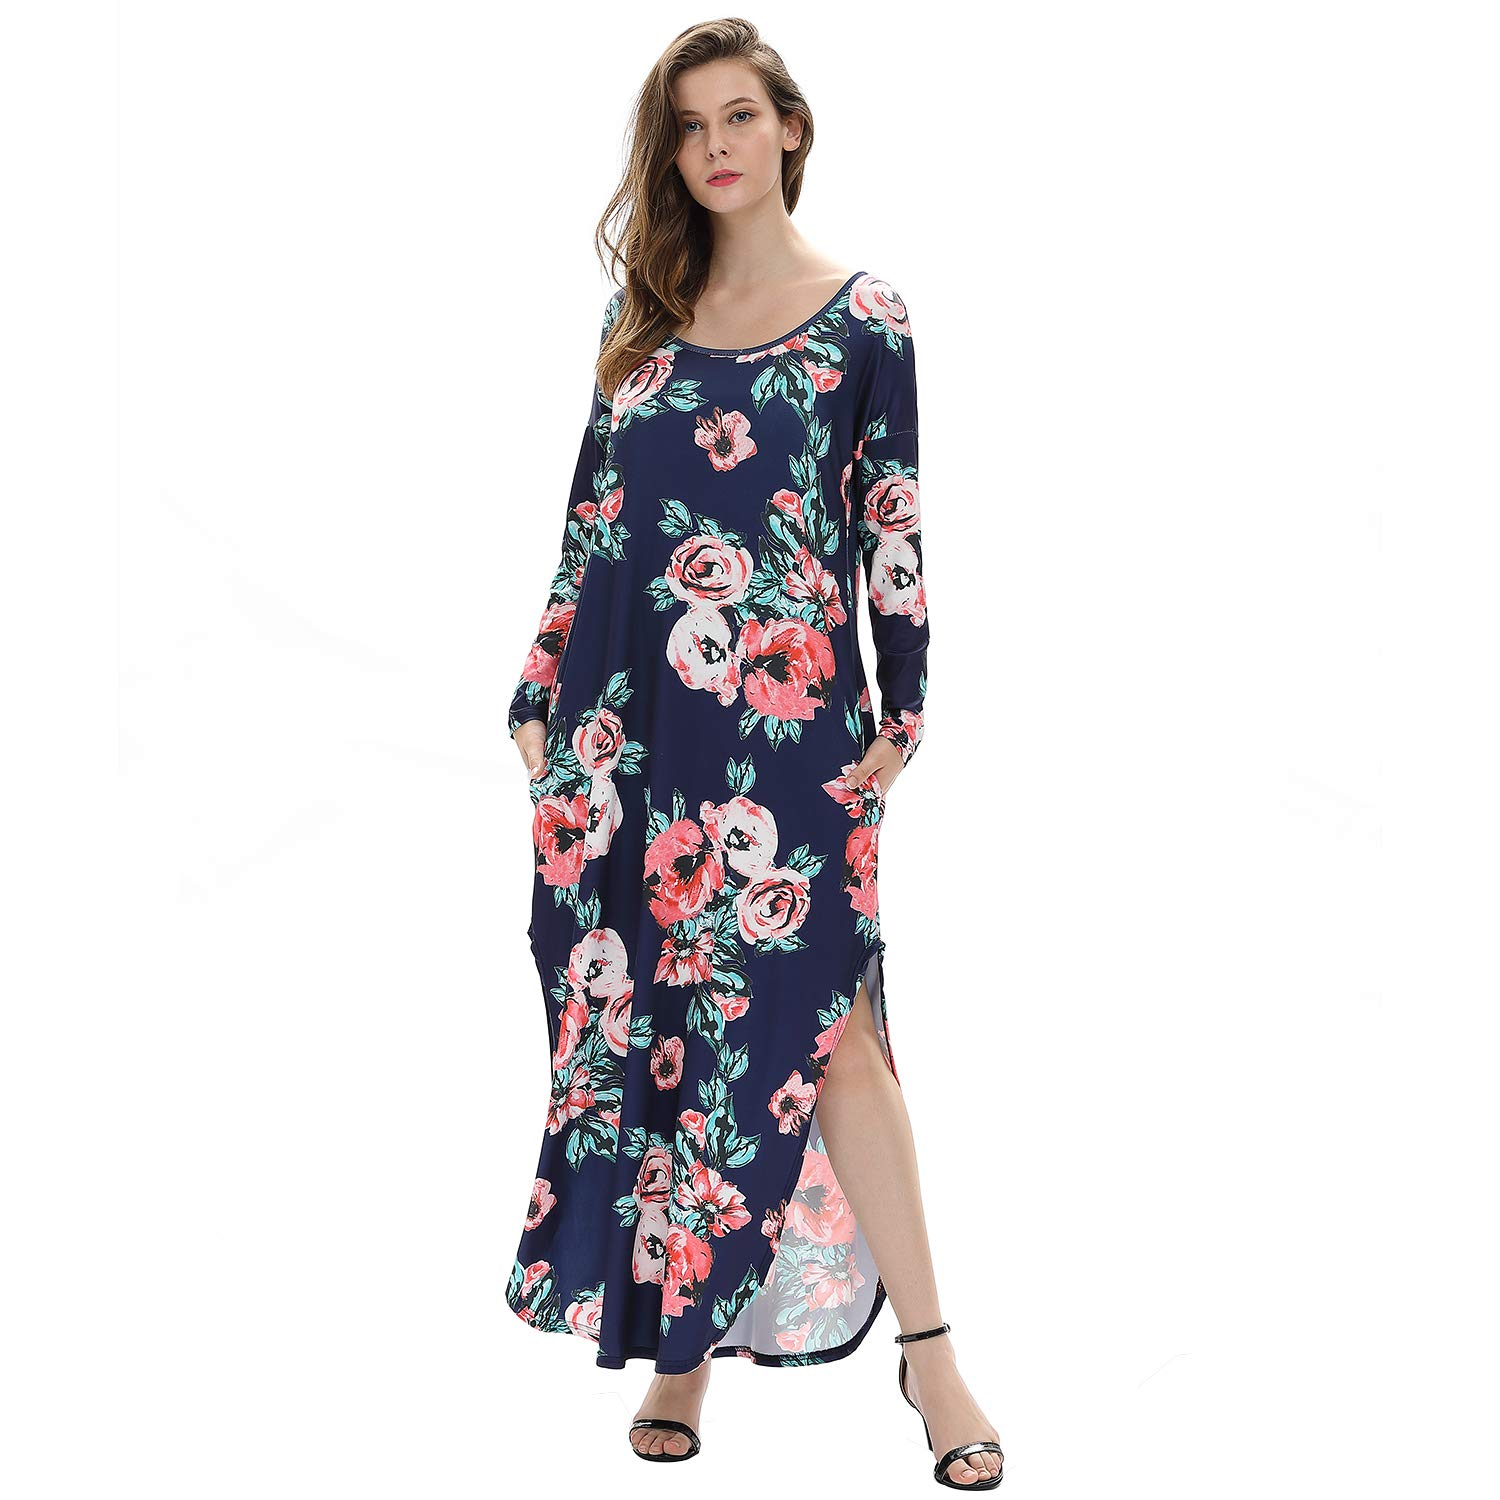 76127b14a619 Floral maxi dresses,chic two sides split design extremely sexy; full length  maxi for fall or winter with long sleeves ...